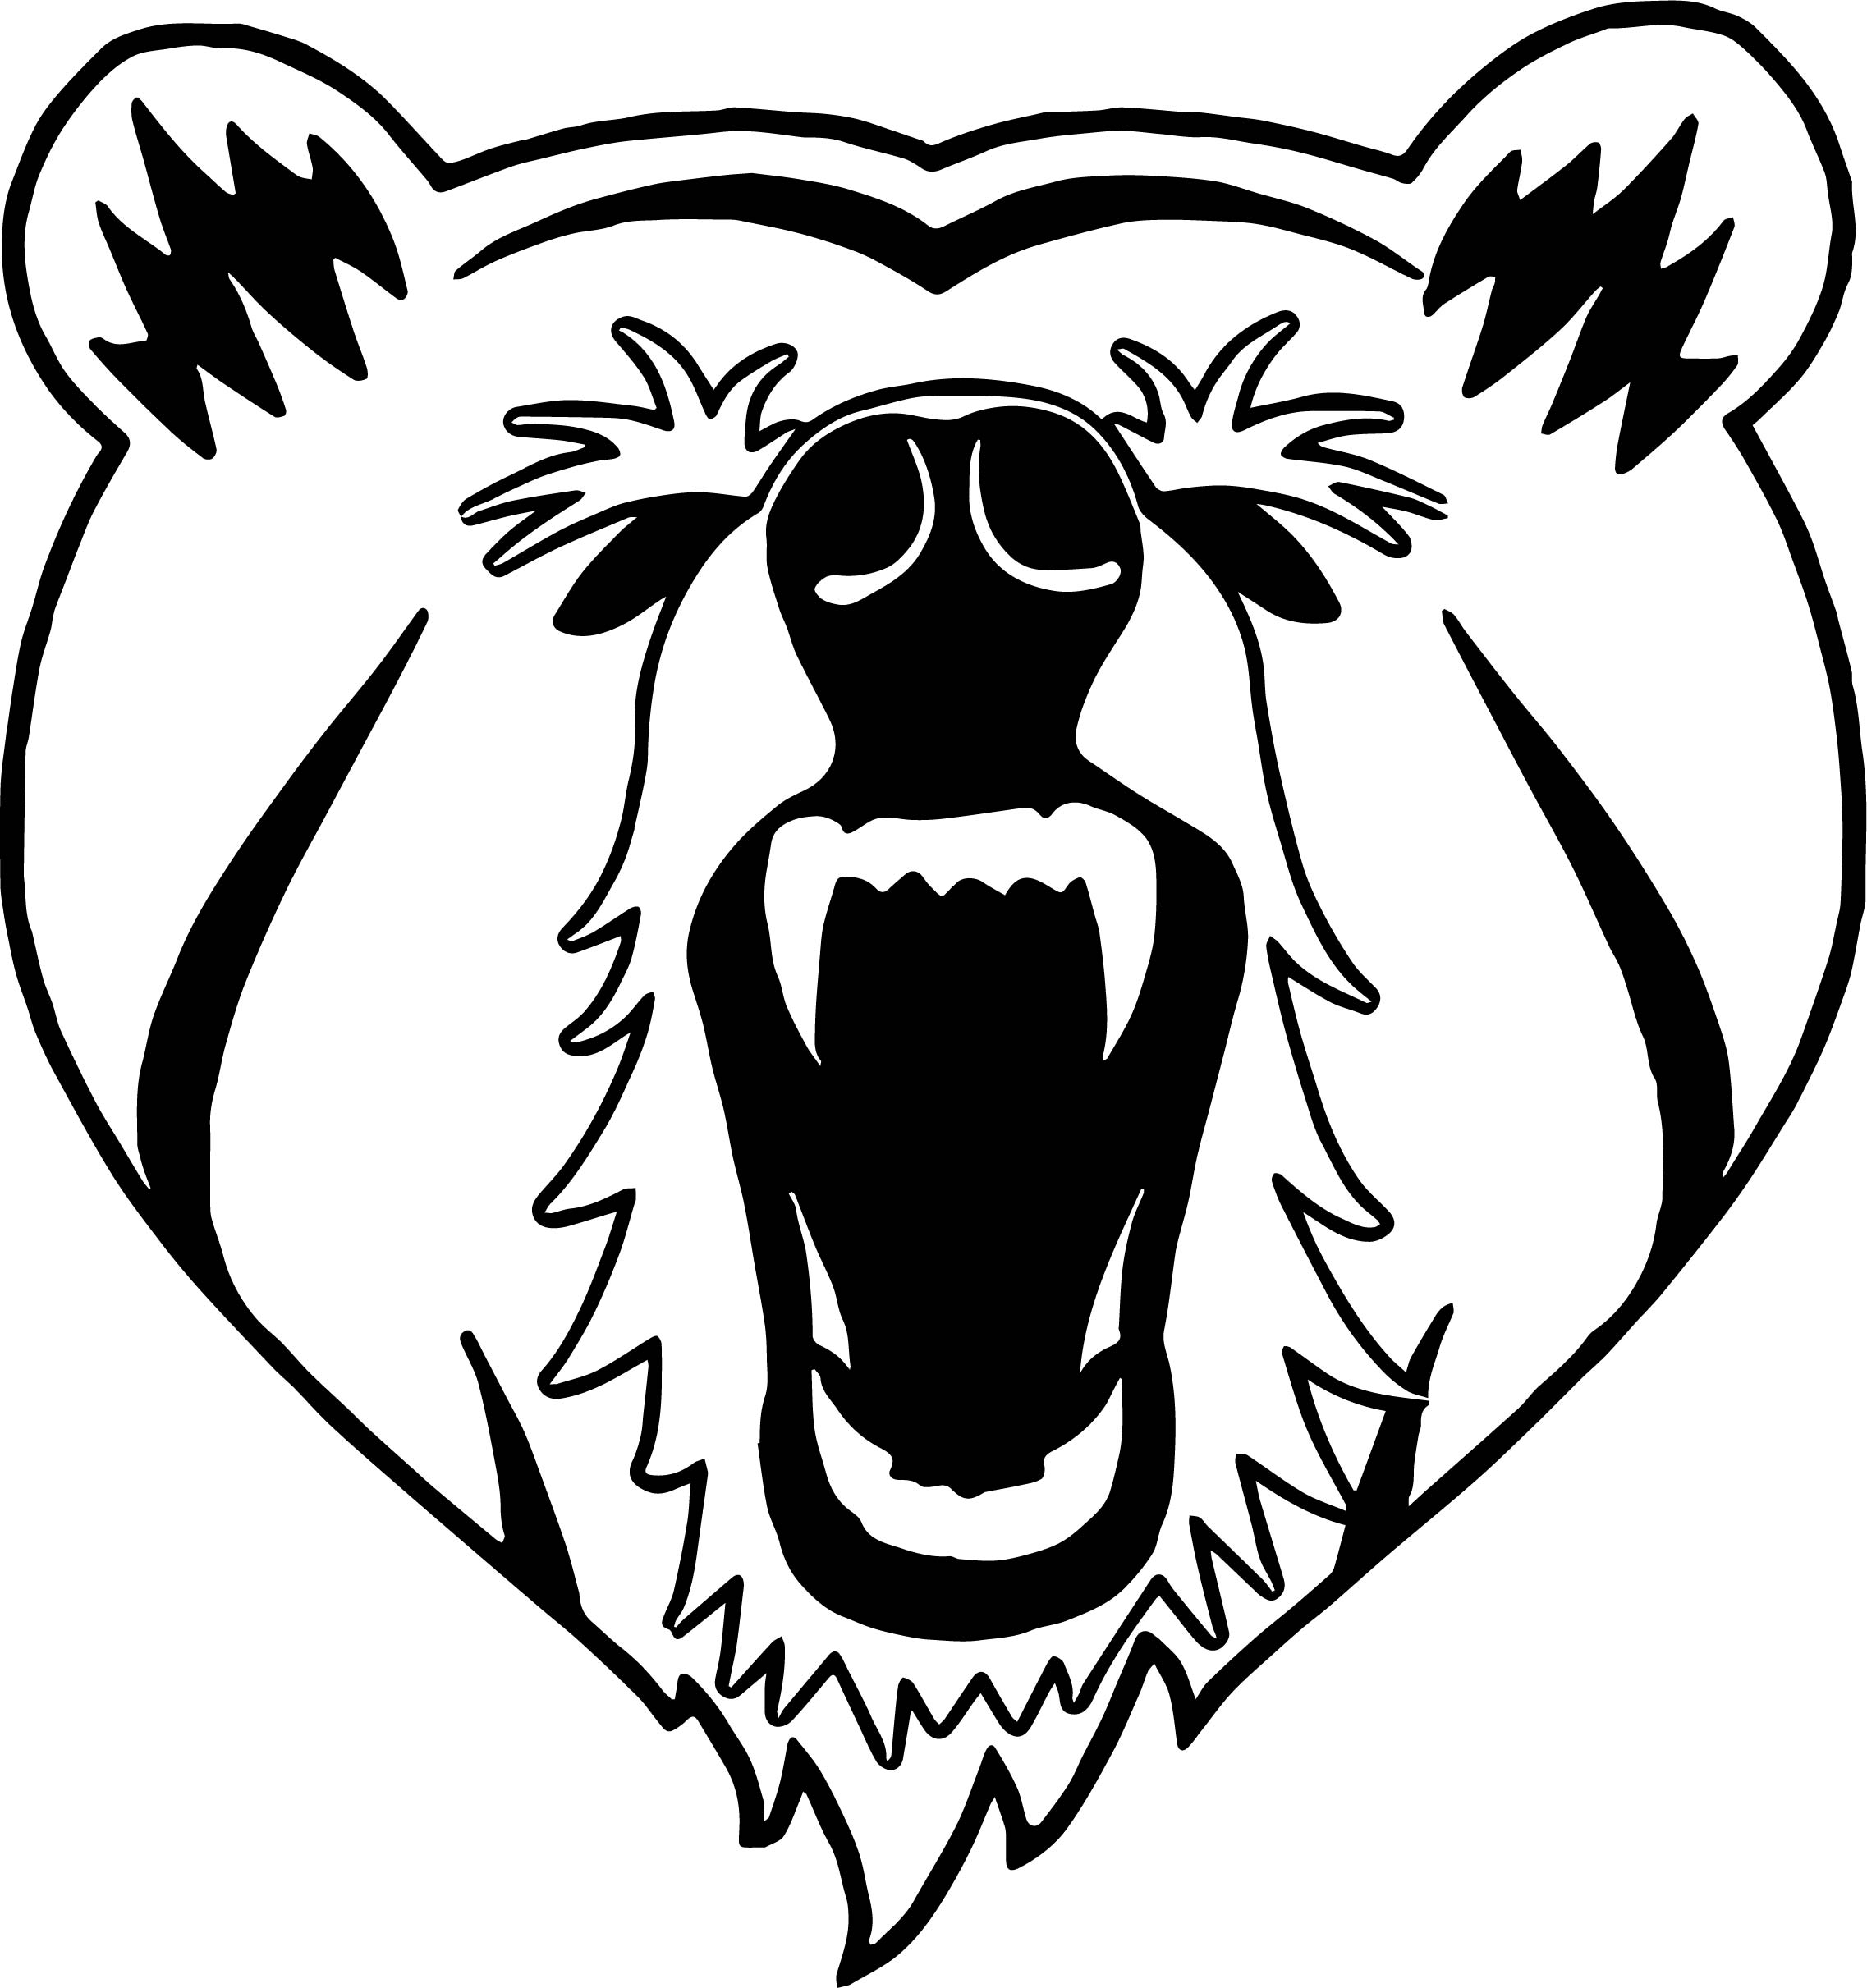 2274x2422 Heart Bear Face Yell Front View Coloring Page Wecoloringpage